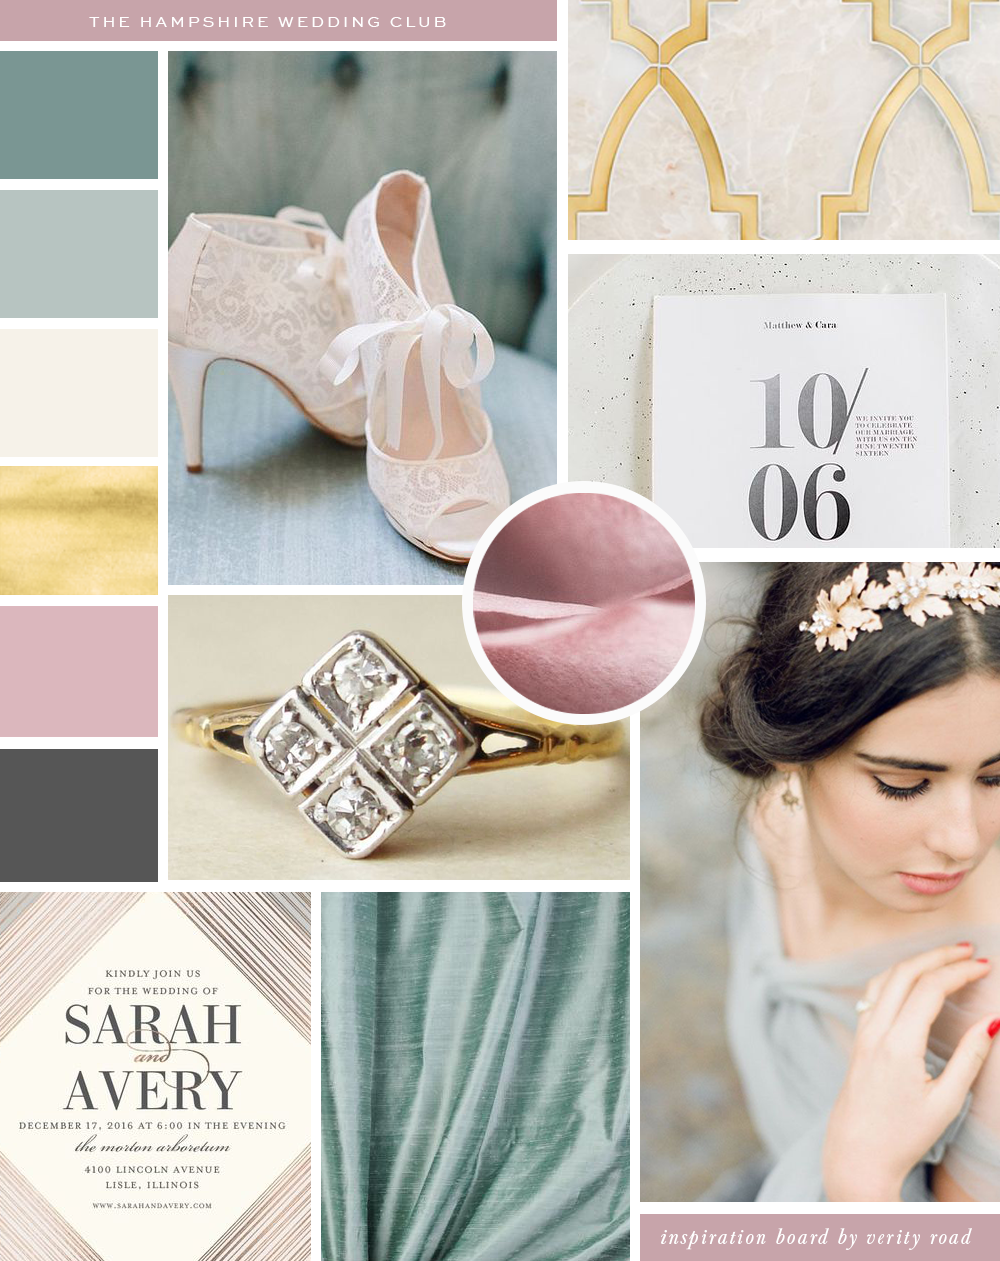 Mood board for THE HAMPSHIRE WEDDING CLUB, WEDDING PROFESSIONALS, WEDDING SUPPLIERS, PHOTOGRAPHERS, WEDDING BUSINESS, WEDDING PLANNERS, FLORISTS. luxury feminine brand styling and web design for female entrepreneurs FROM VERITY ROAD. Inspiration board of typography, Sans serif, CHARCOAL, DUSTY ROSE, TEAL, MUTED MINT, gold, color palette,  pattern, TEXTURE, ROMANTIC BRIDE, LUXURY WEDDING, ELEGANT HIGH-END ROMANCE, business owner, blogger, watercolor, geometric shape. See more for brand board, brand style guide, social media branding .